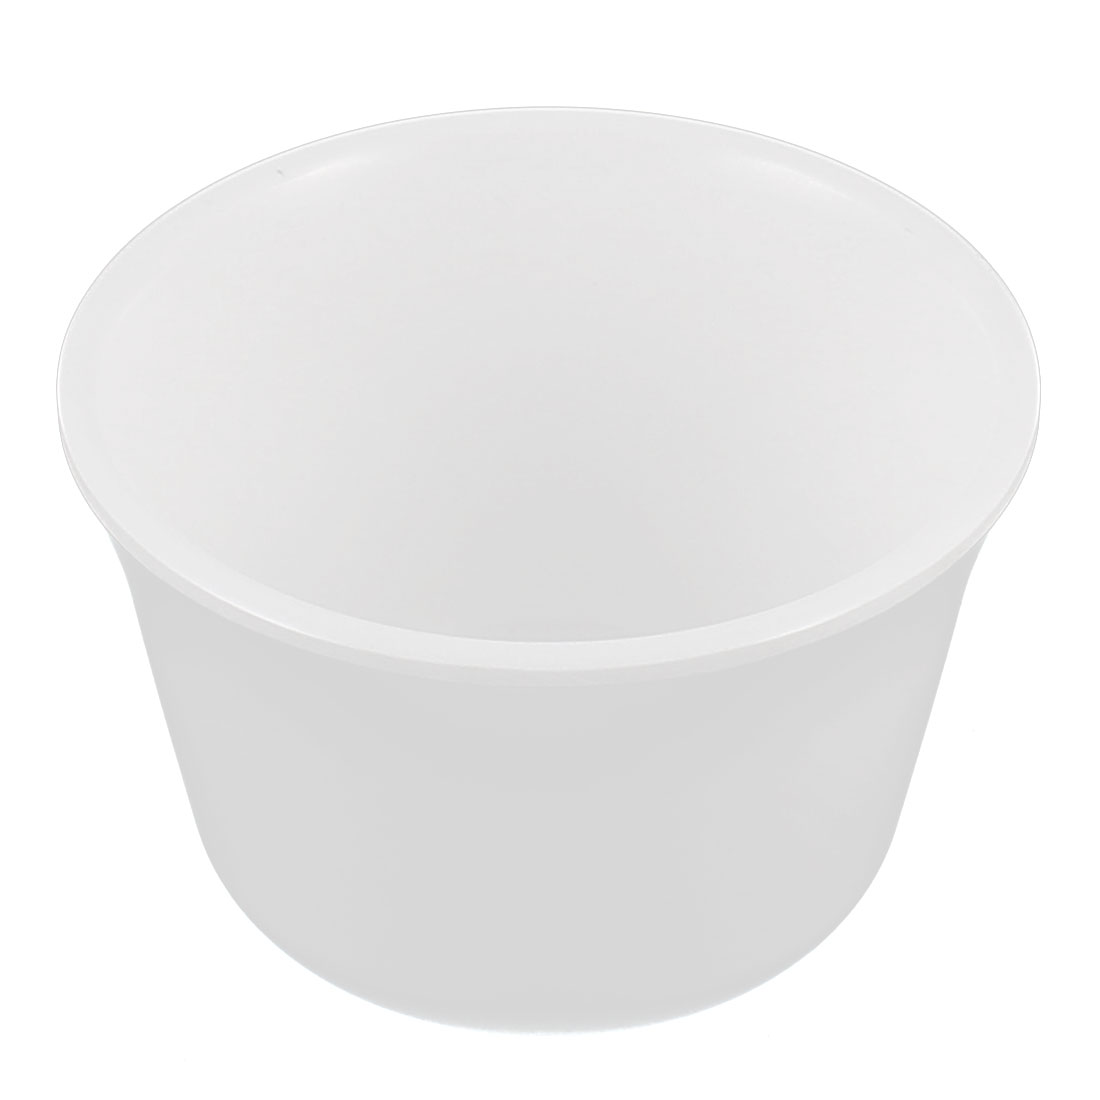 Home Restaurant Plastic Water Tea Drinking Cup White 8cm Dia